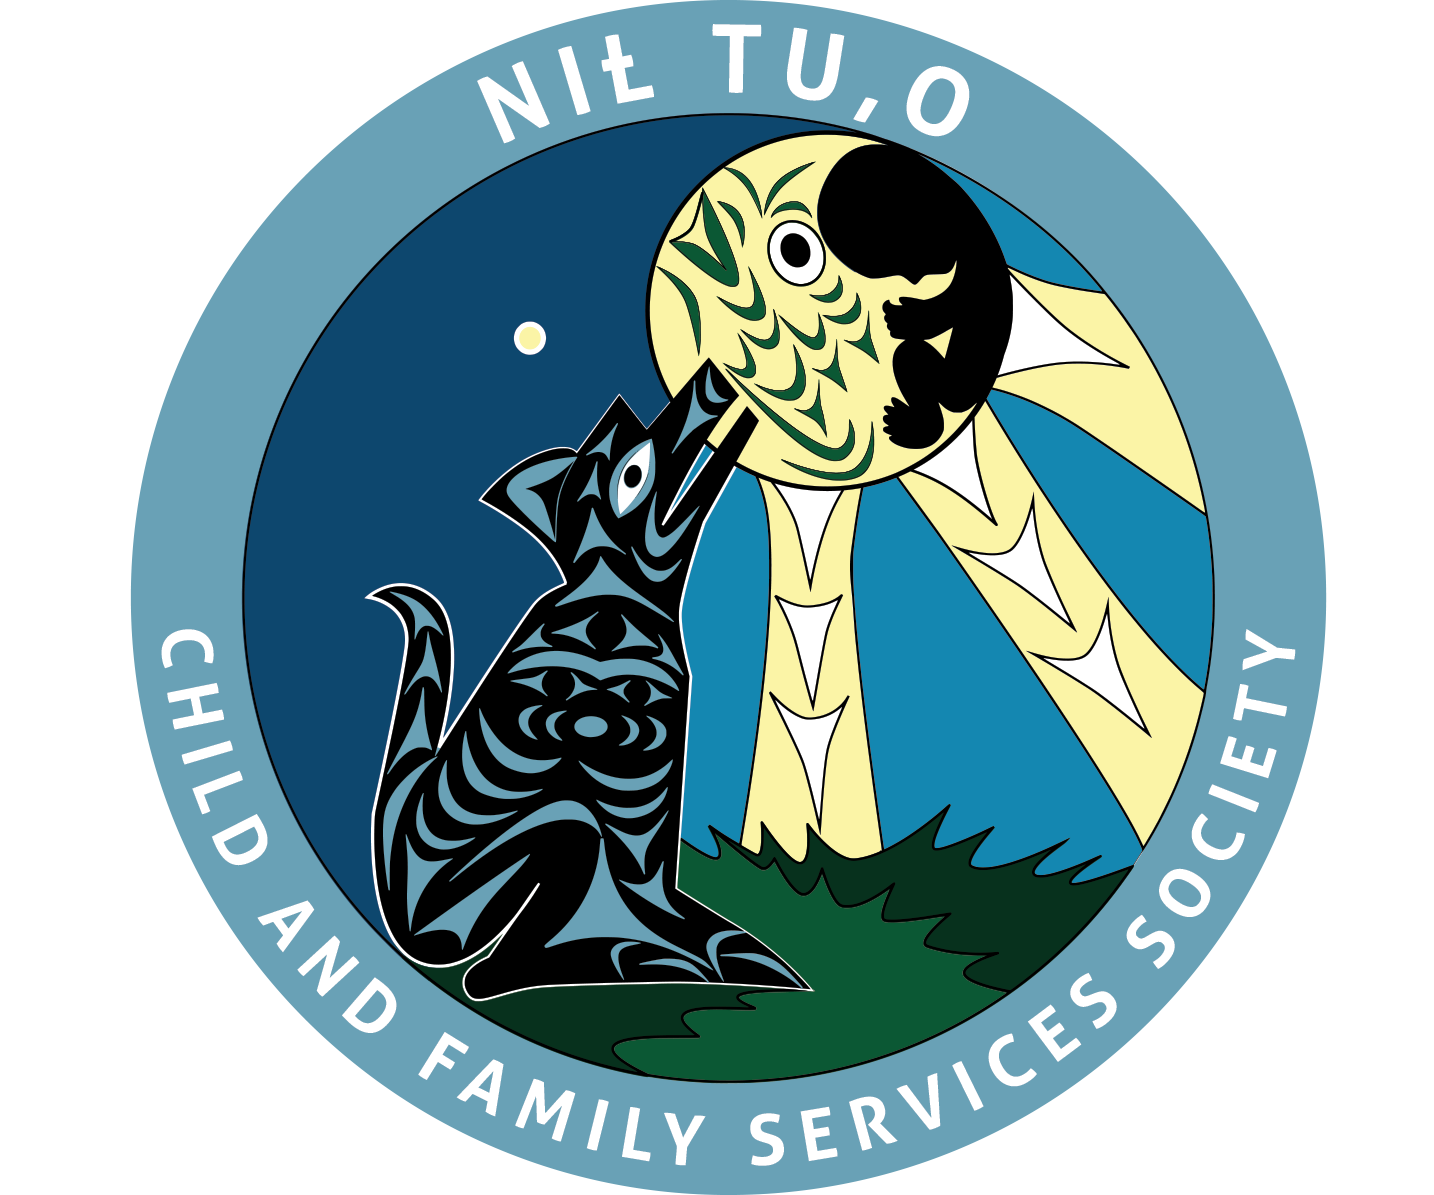 Niltuo-Text-around-logo-blue.png